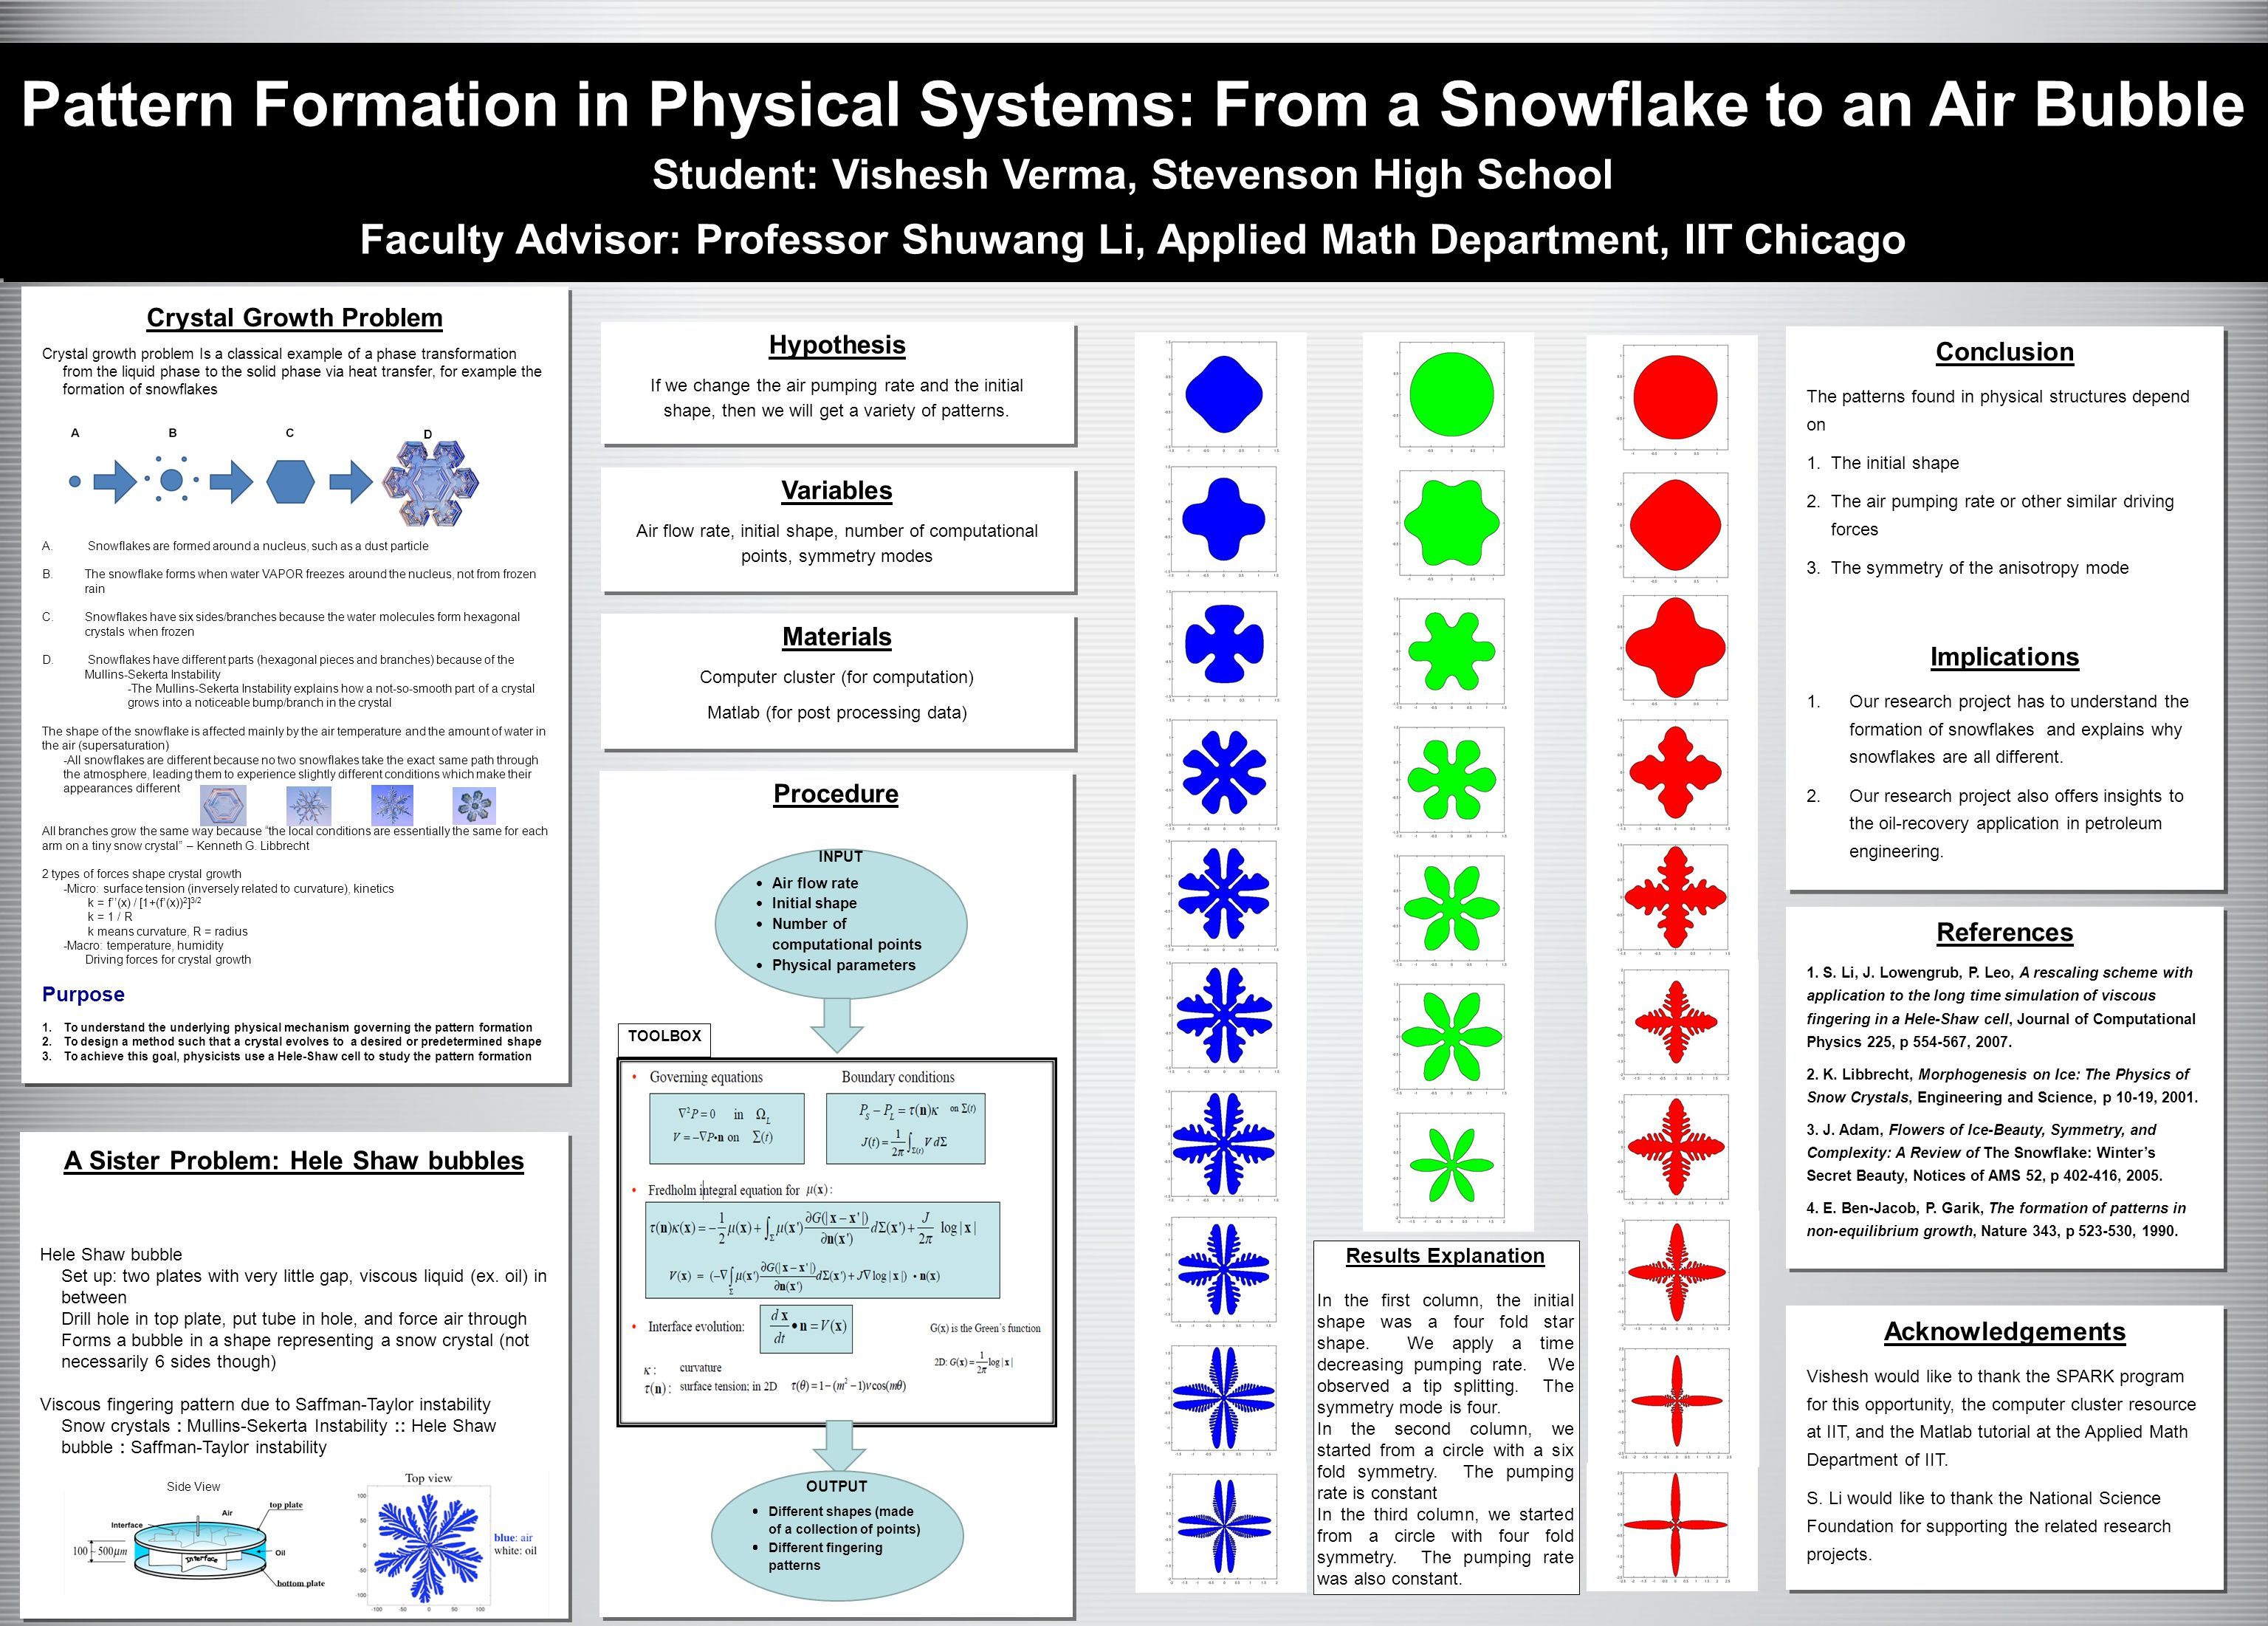 Pattern Formation in Physical Systems: From a Snowflake to an Air Bubble Student: Vishesh Verma, Stevenson High School Faculty Advisor: Professor Shuw